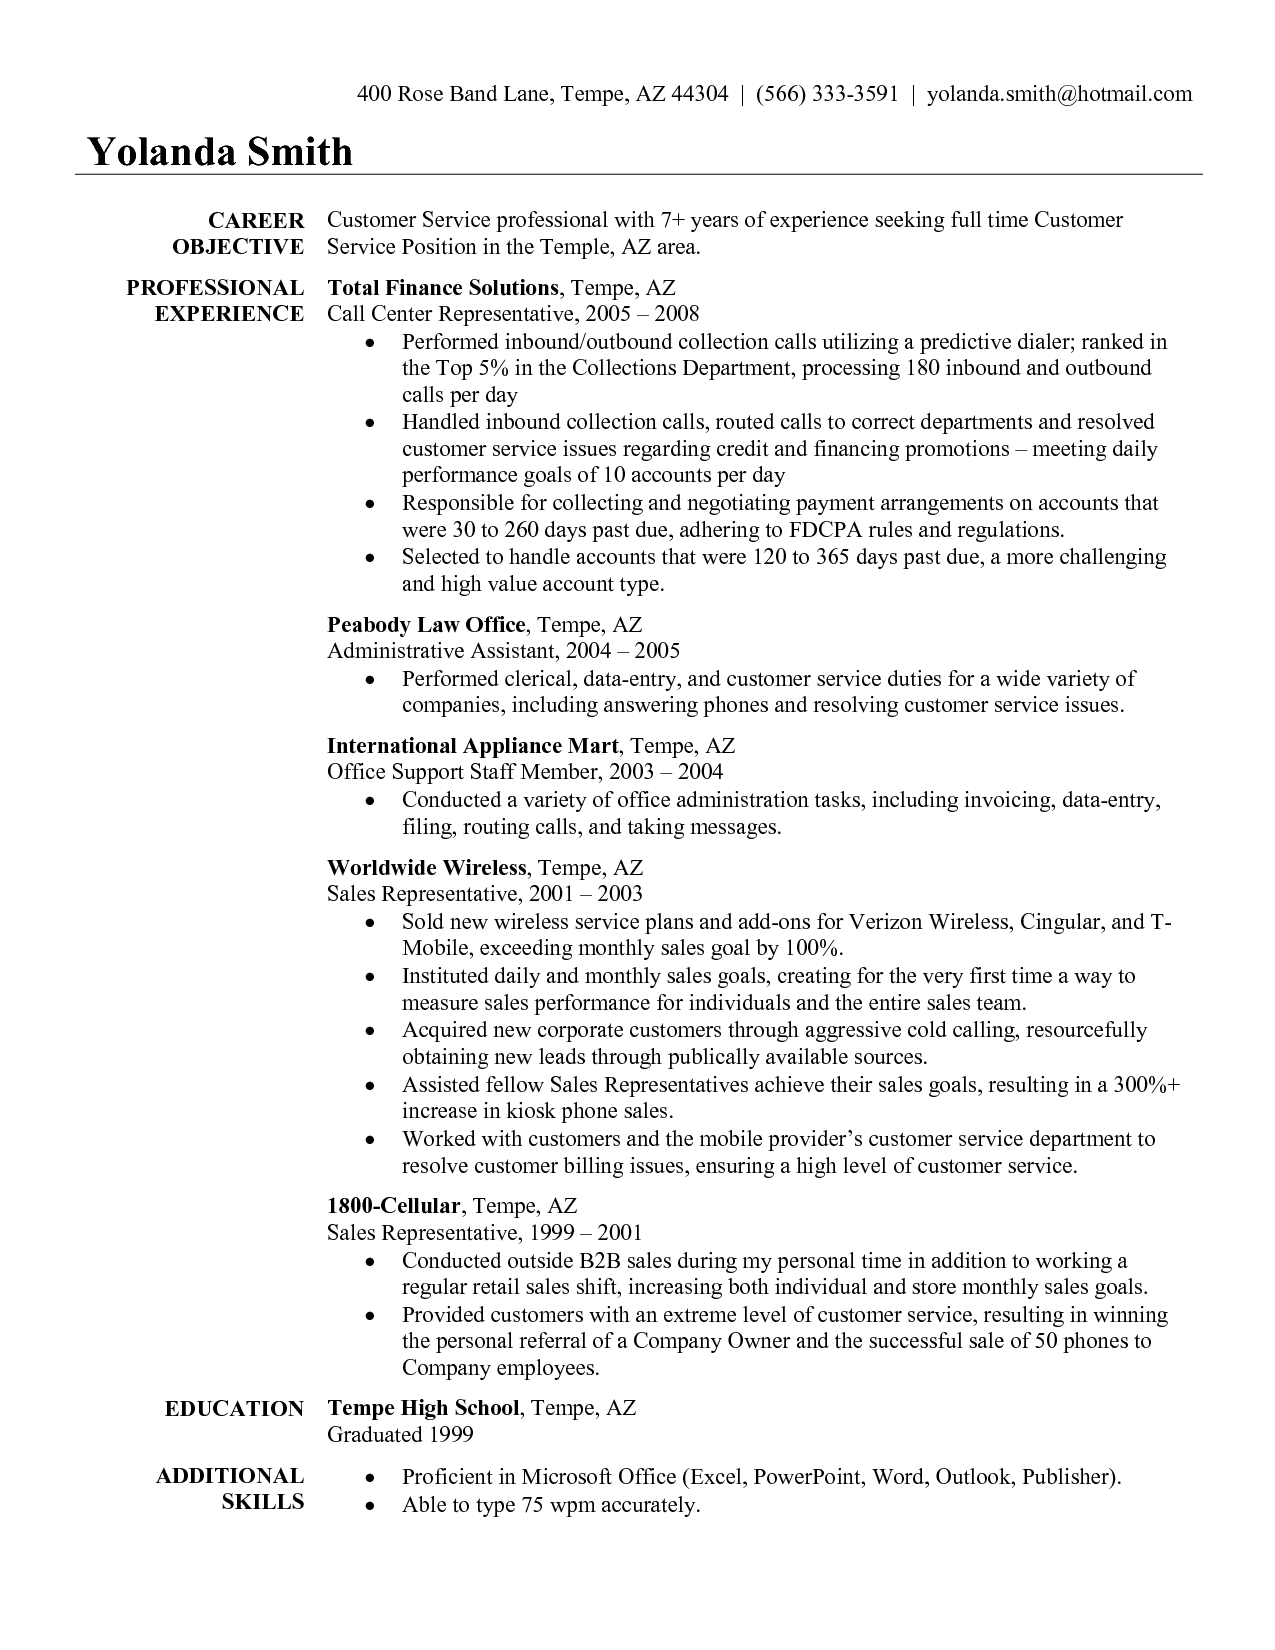 Examples Of Skills For Resume Custom Traffic Customer Resume Examplescustomer Service Resume Examples .